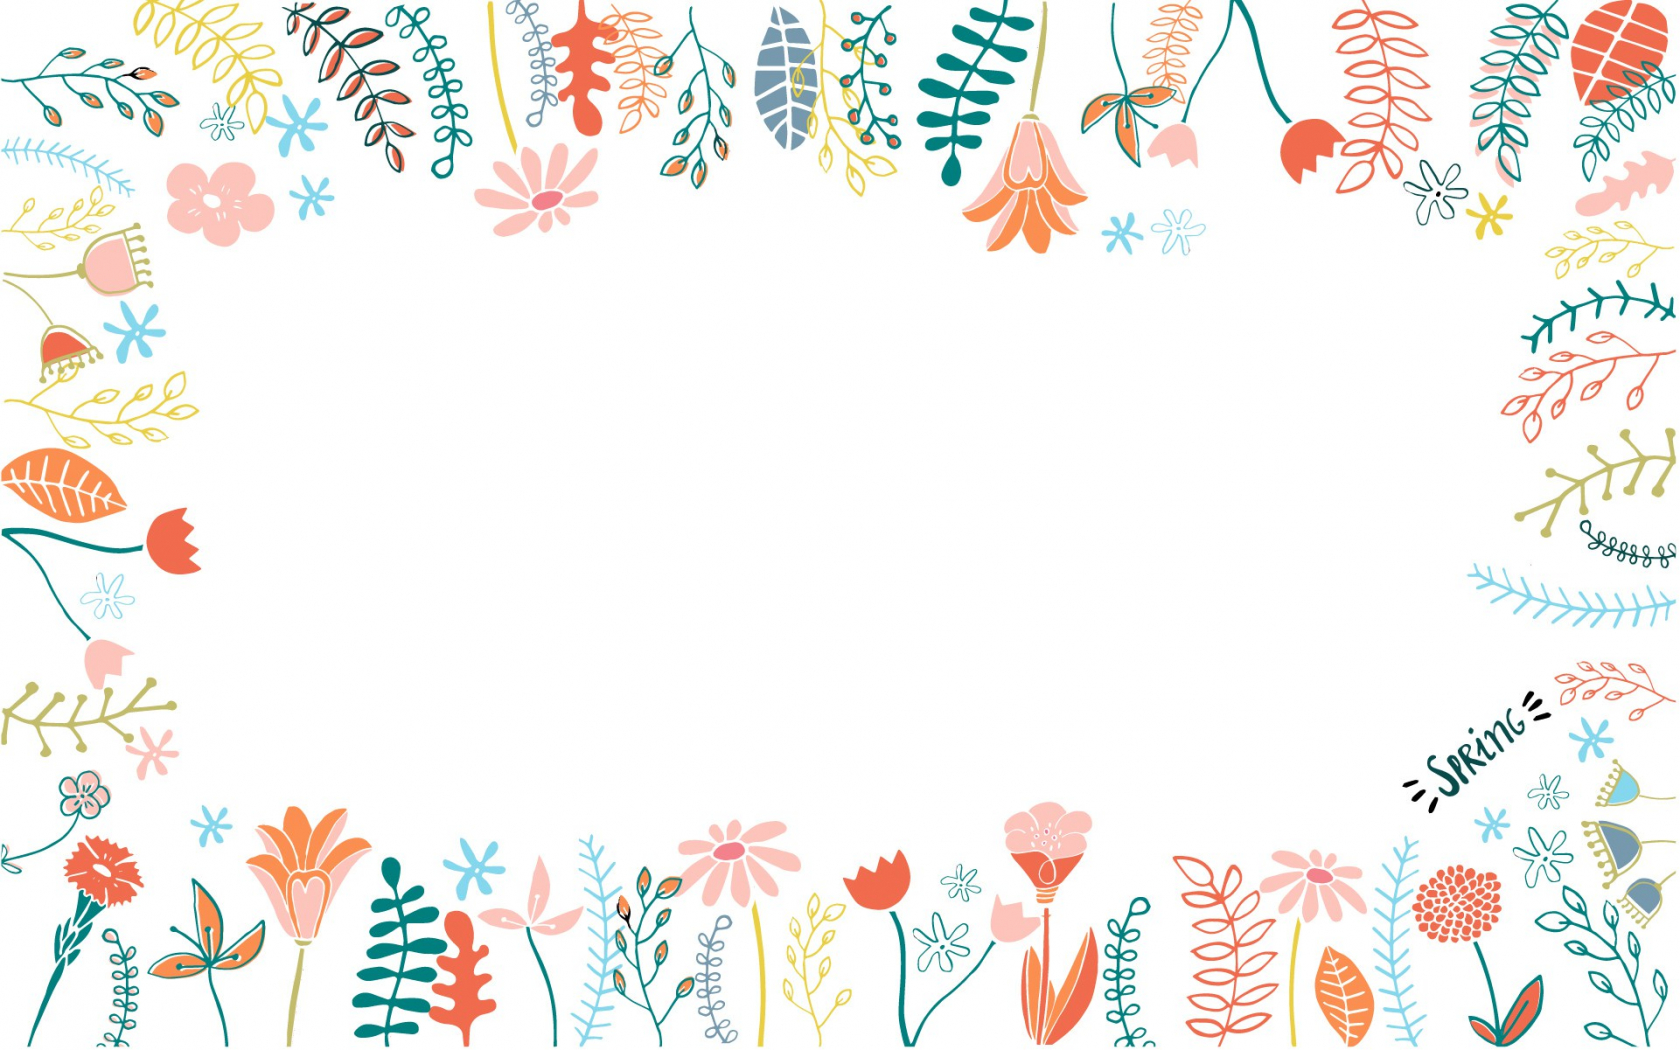 Free Download Desktop Wallpaper Watercolor Floral Desktop 150207